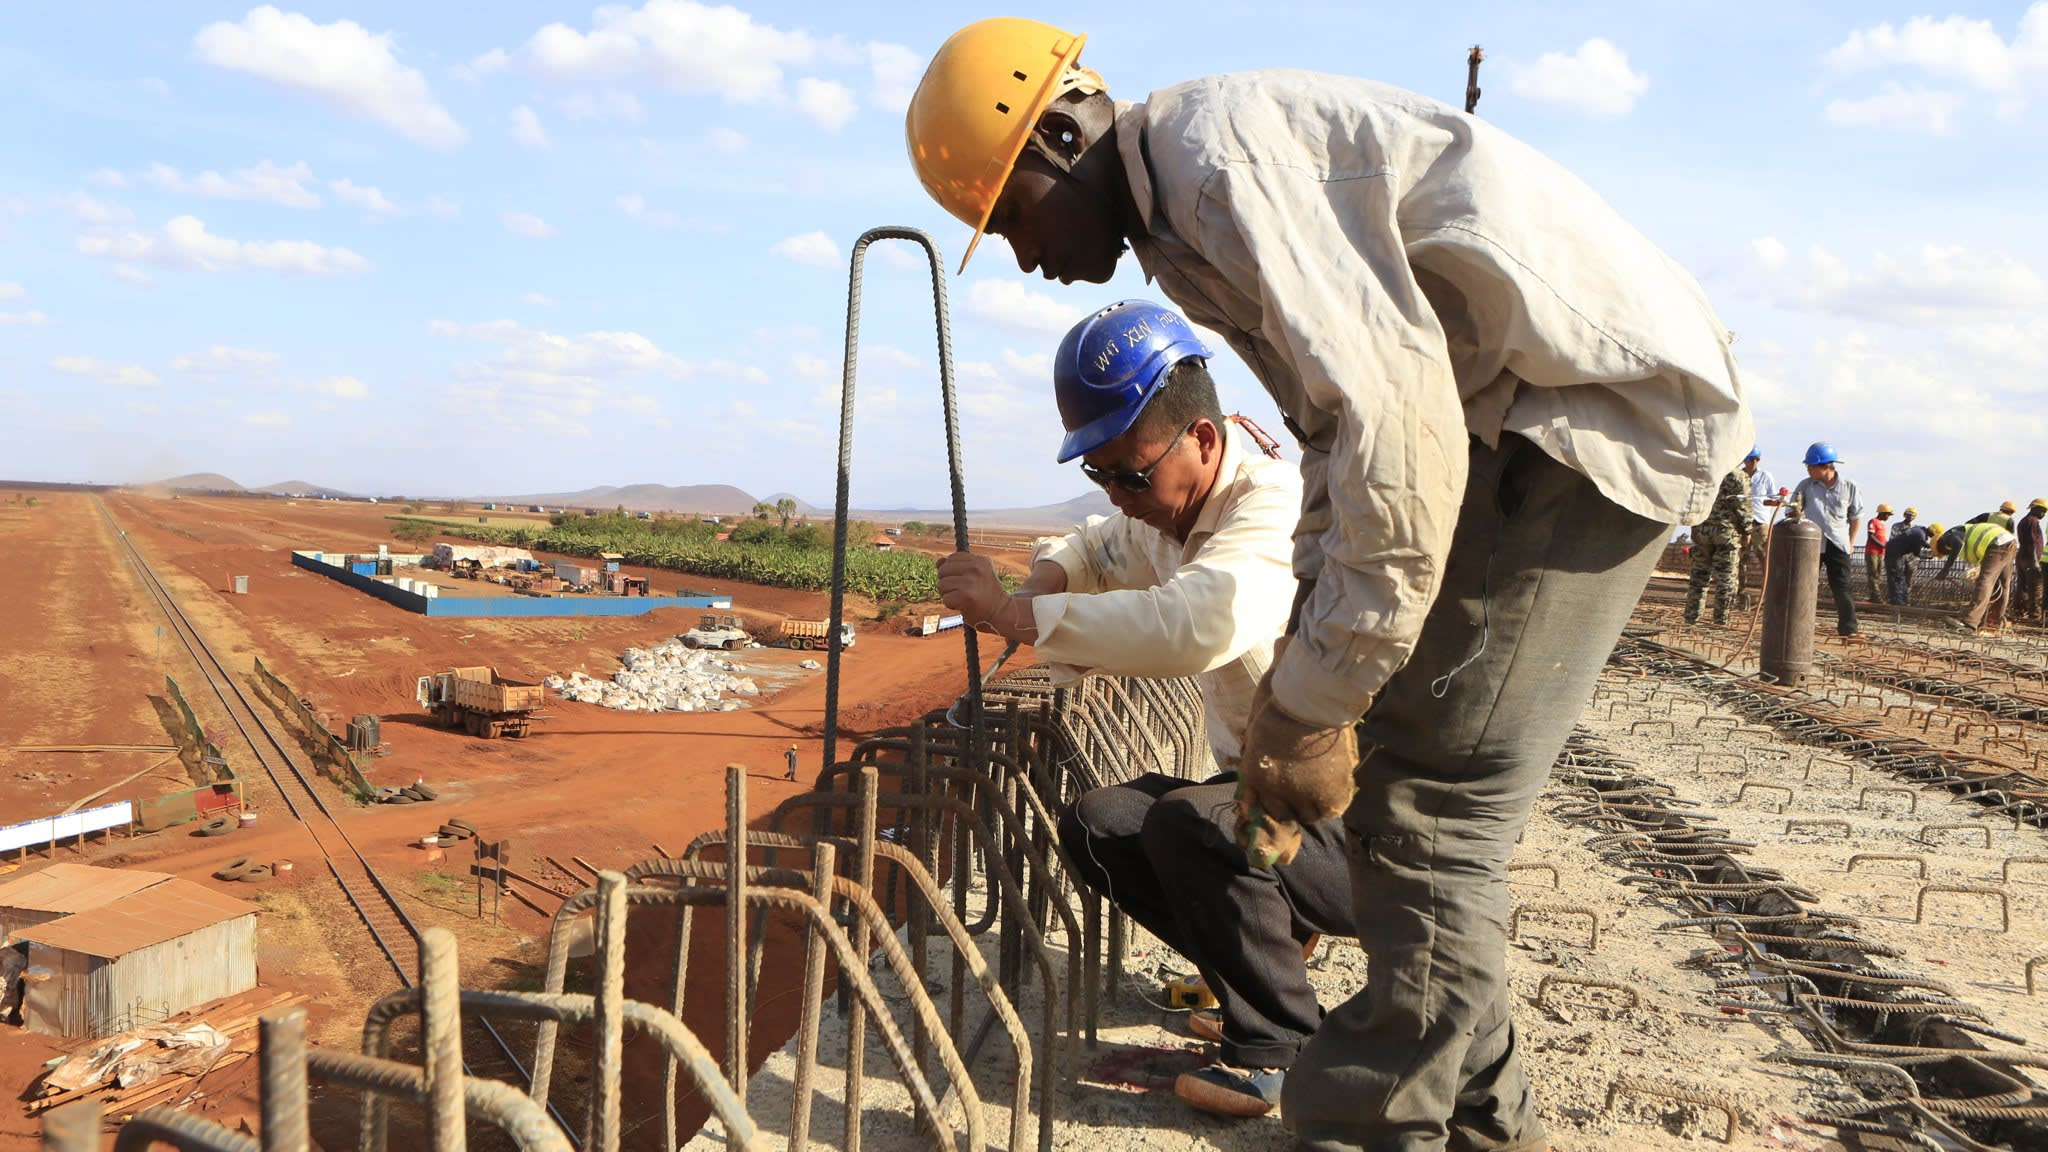 China pledges $60bn for Africa as Xi rejects 'debt trap' claims